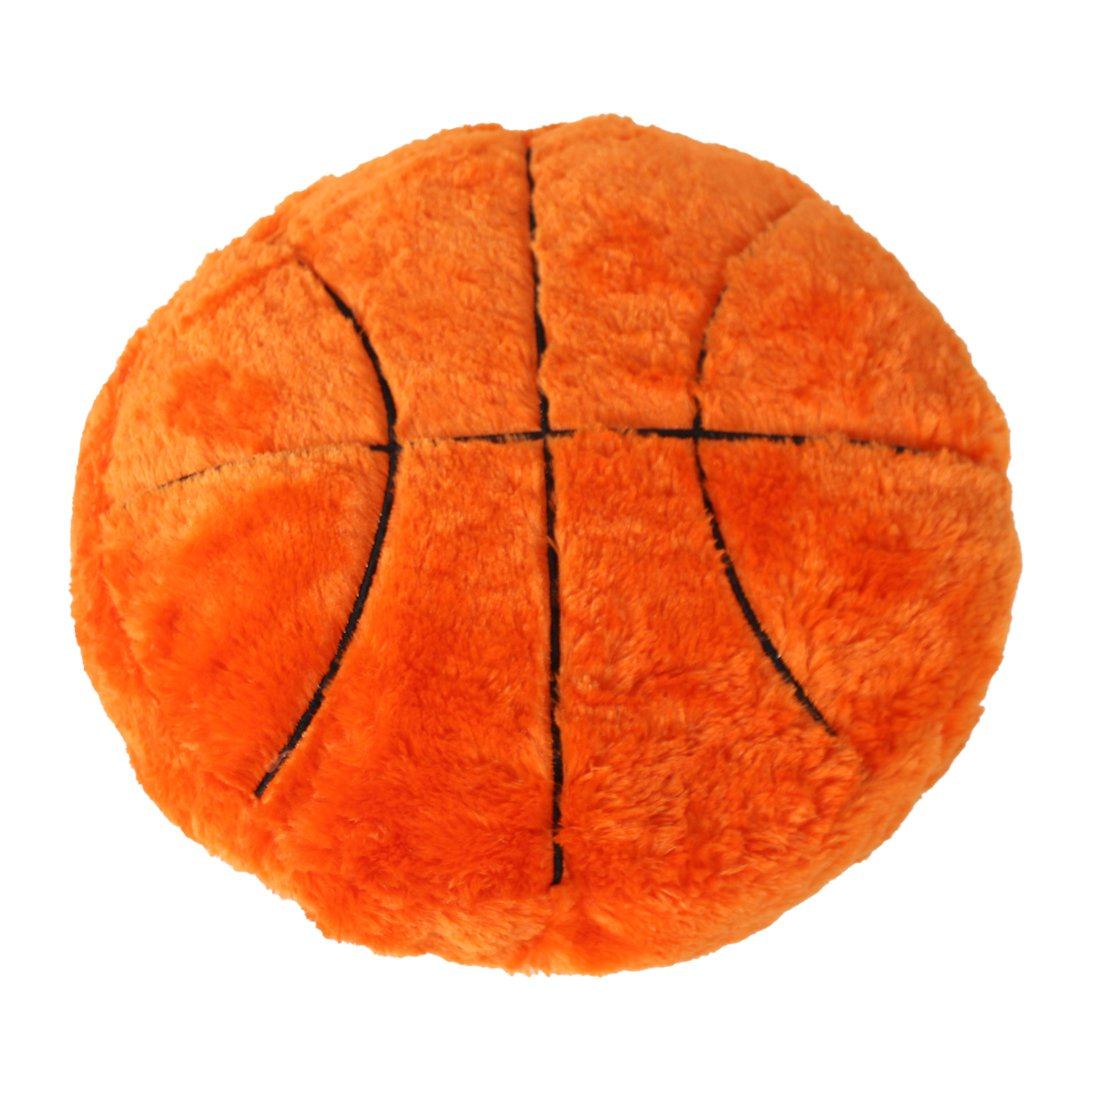 CatchStar Basketball Pillow Fluffy Plush Stuffed Ball Throw Soft Durable Sports Toy Gift for Kids Room Decoration Winter Style